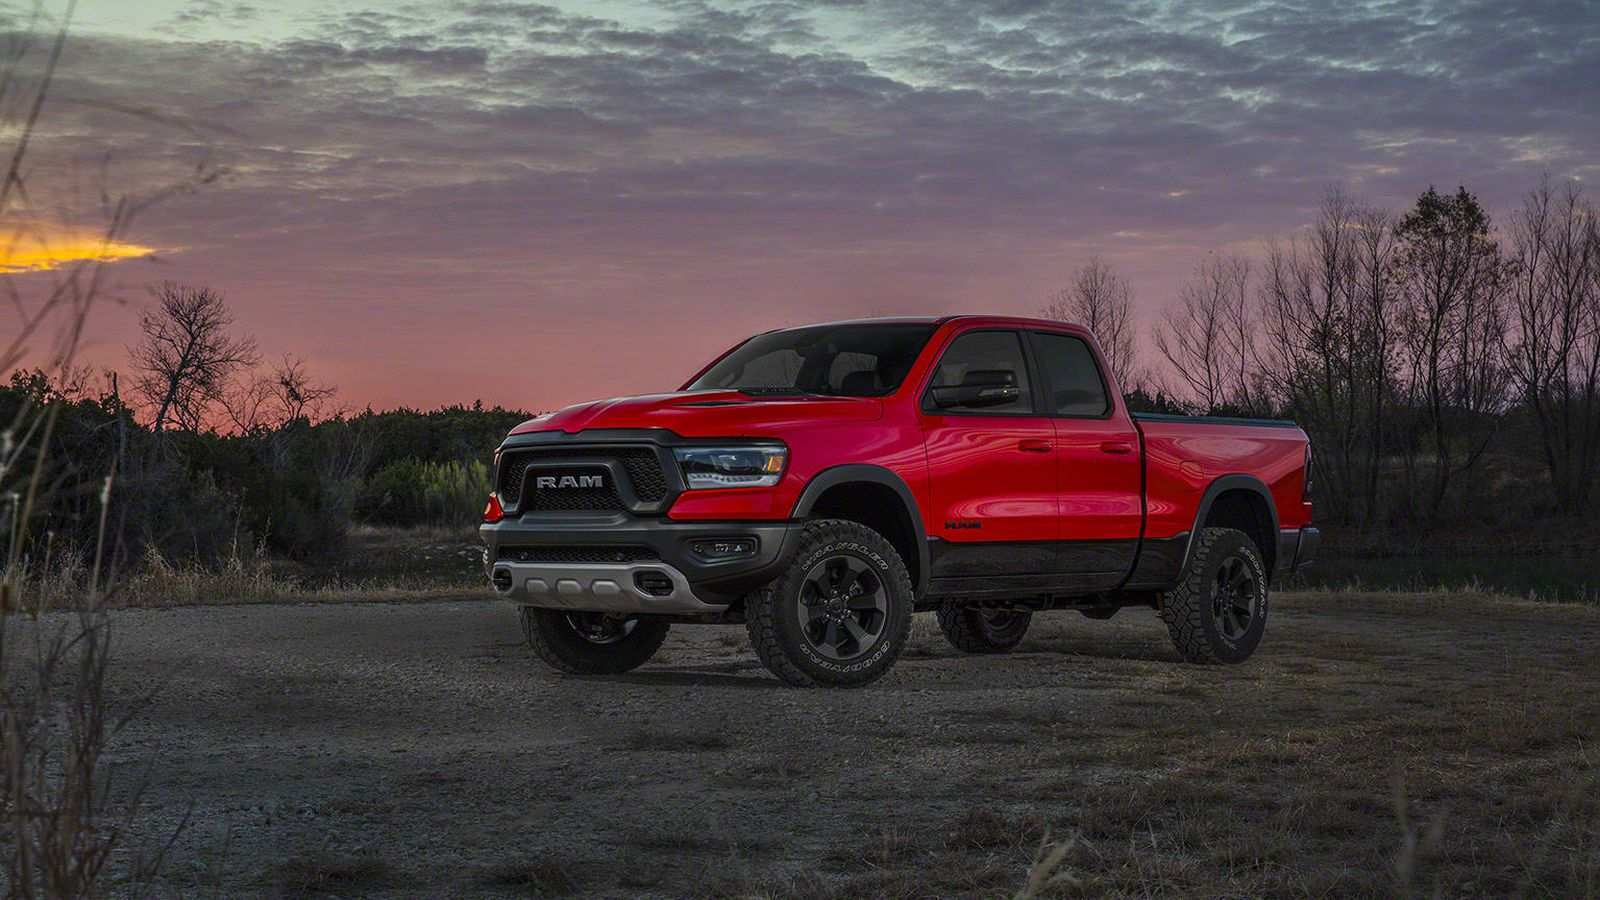 82 Concept of 2019 Dodge Ram 1500 Release Date Photos by 2019 Dodge Ram 1500 Release Date